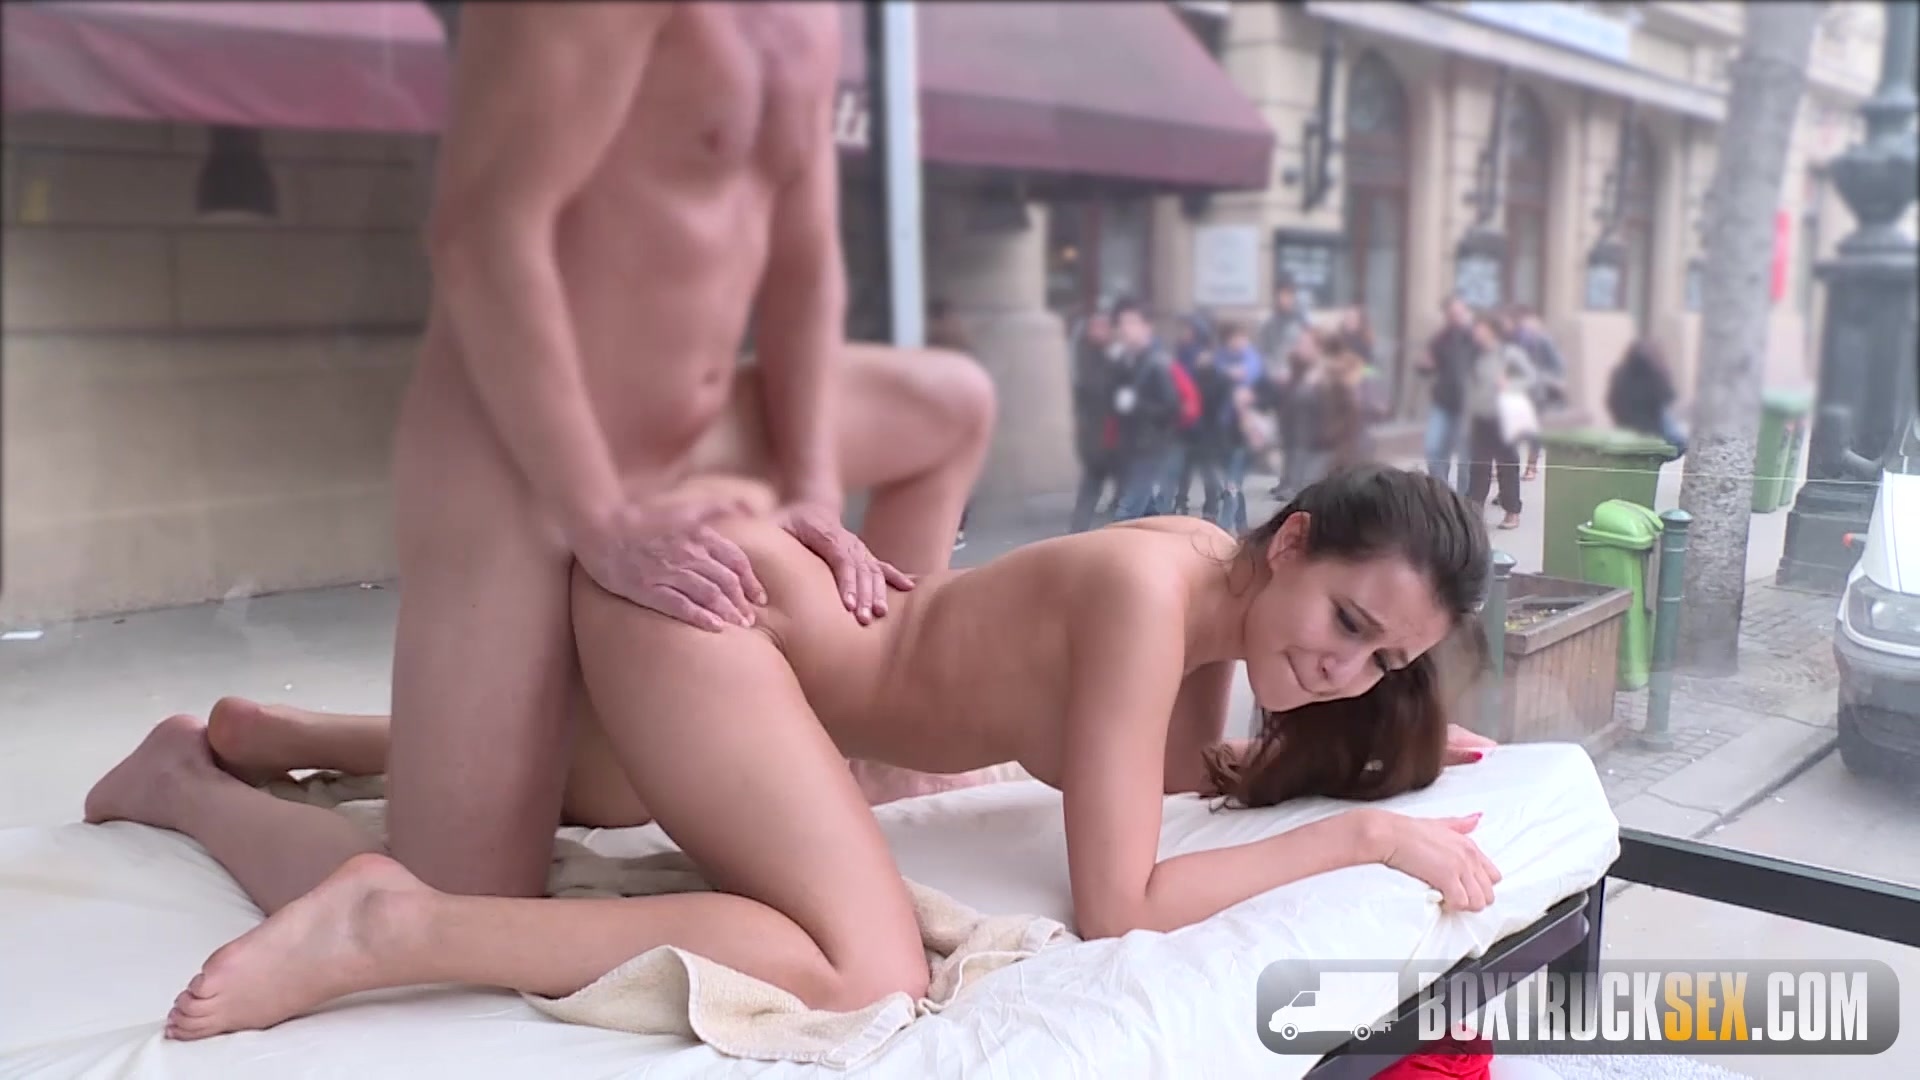 image Cindy loarn moans through her sex massage in public